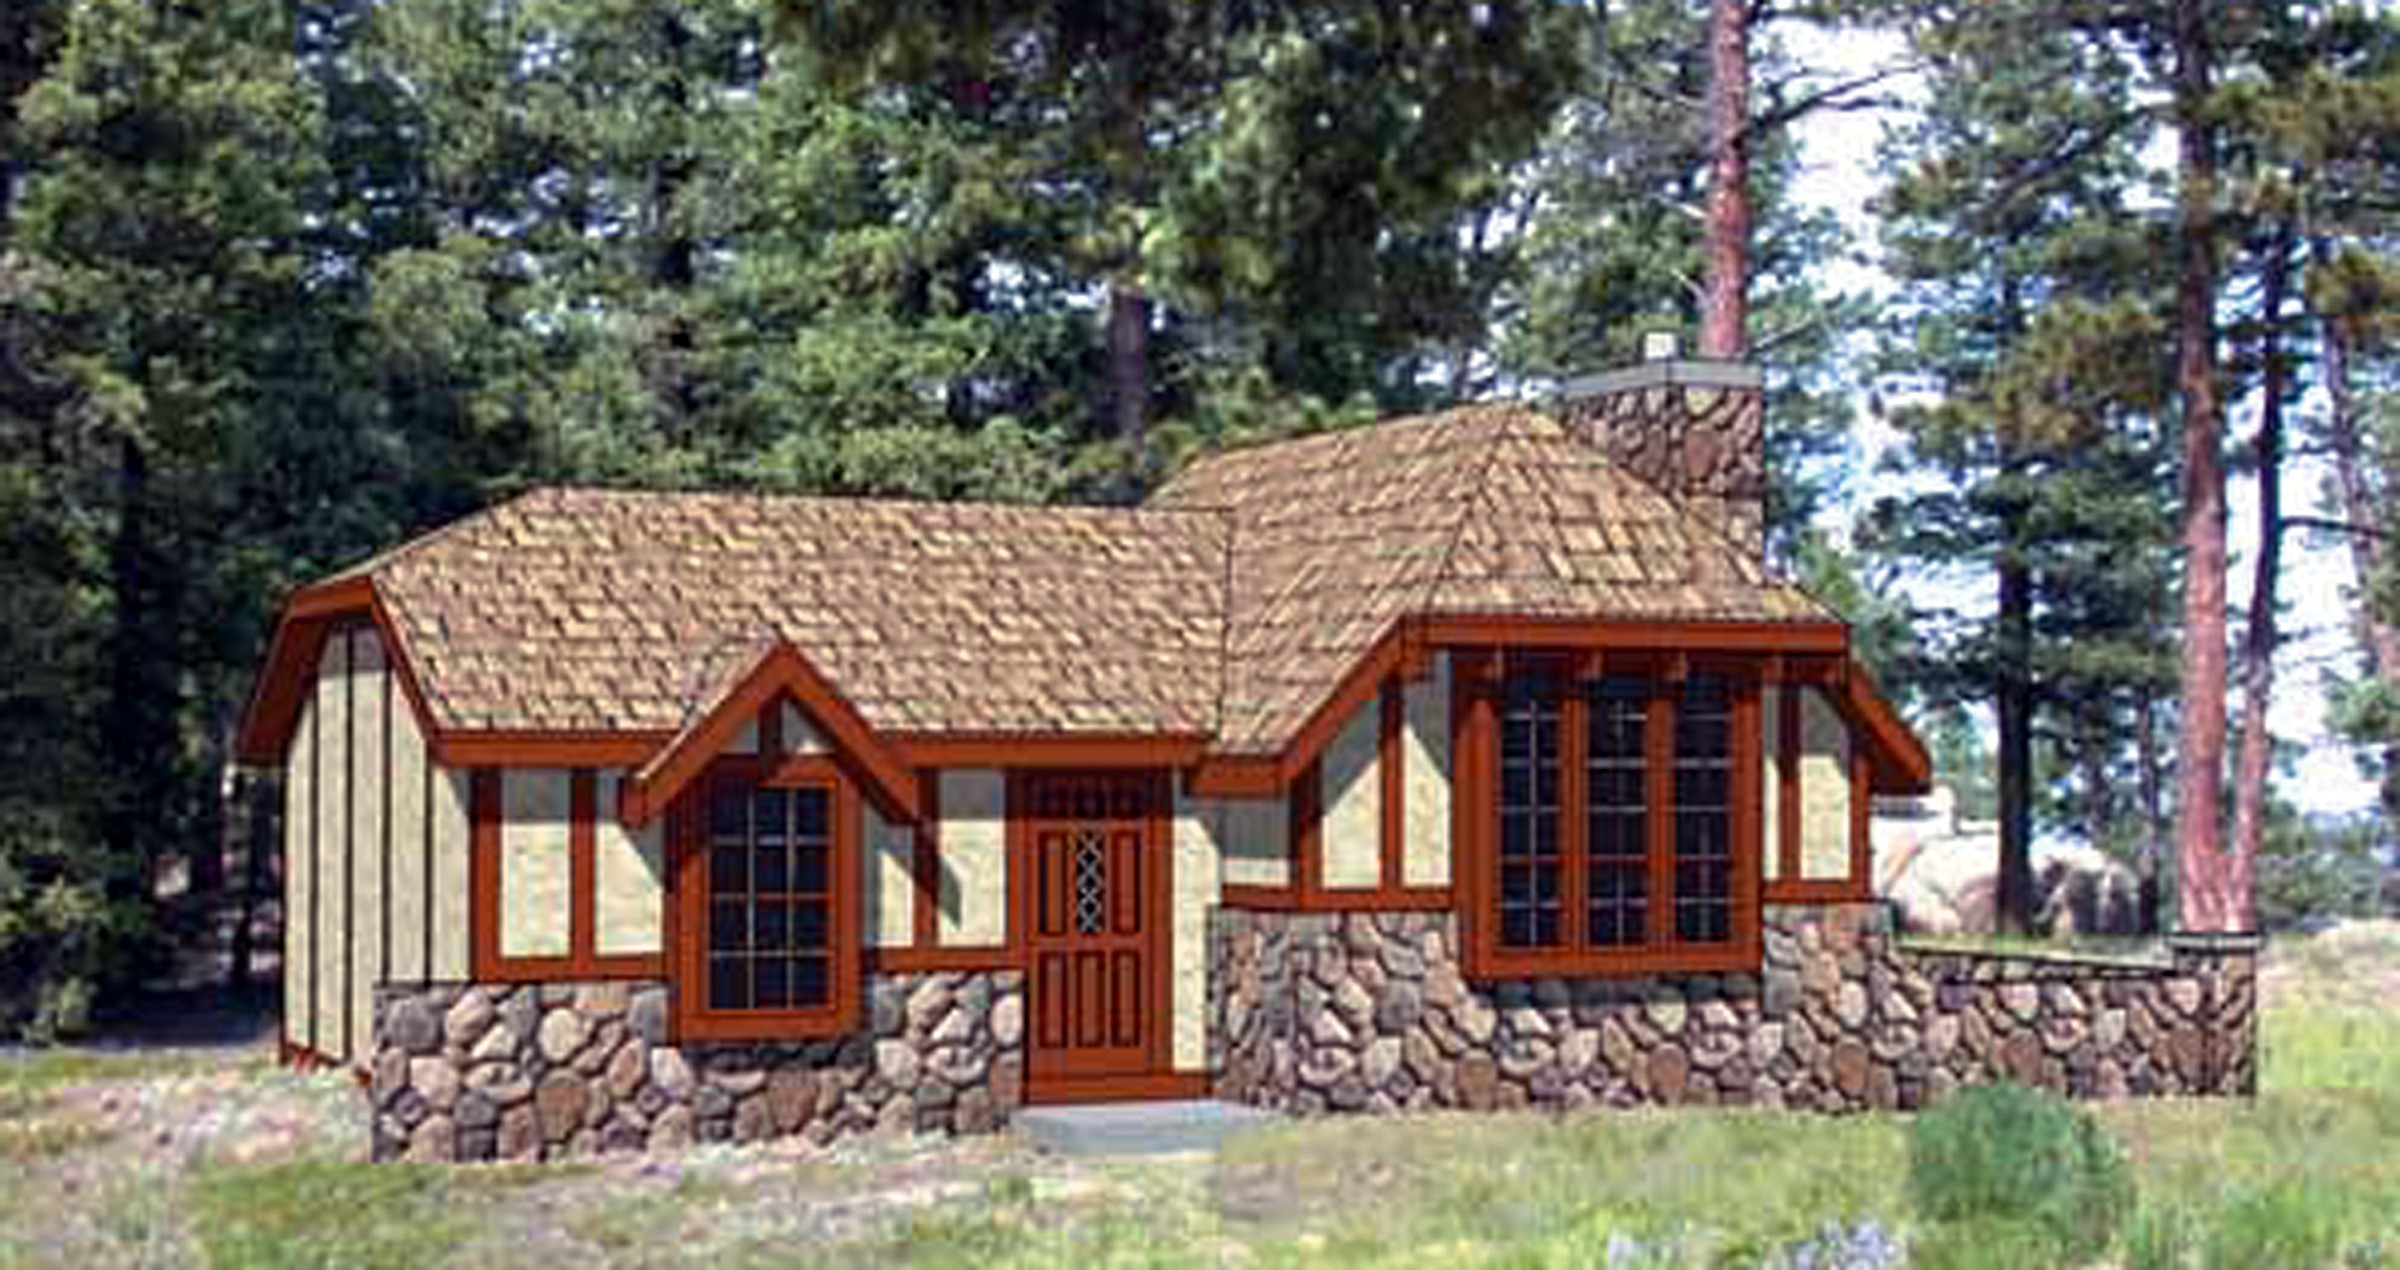 Charming Storybook Cottage - 12721ma Architectural